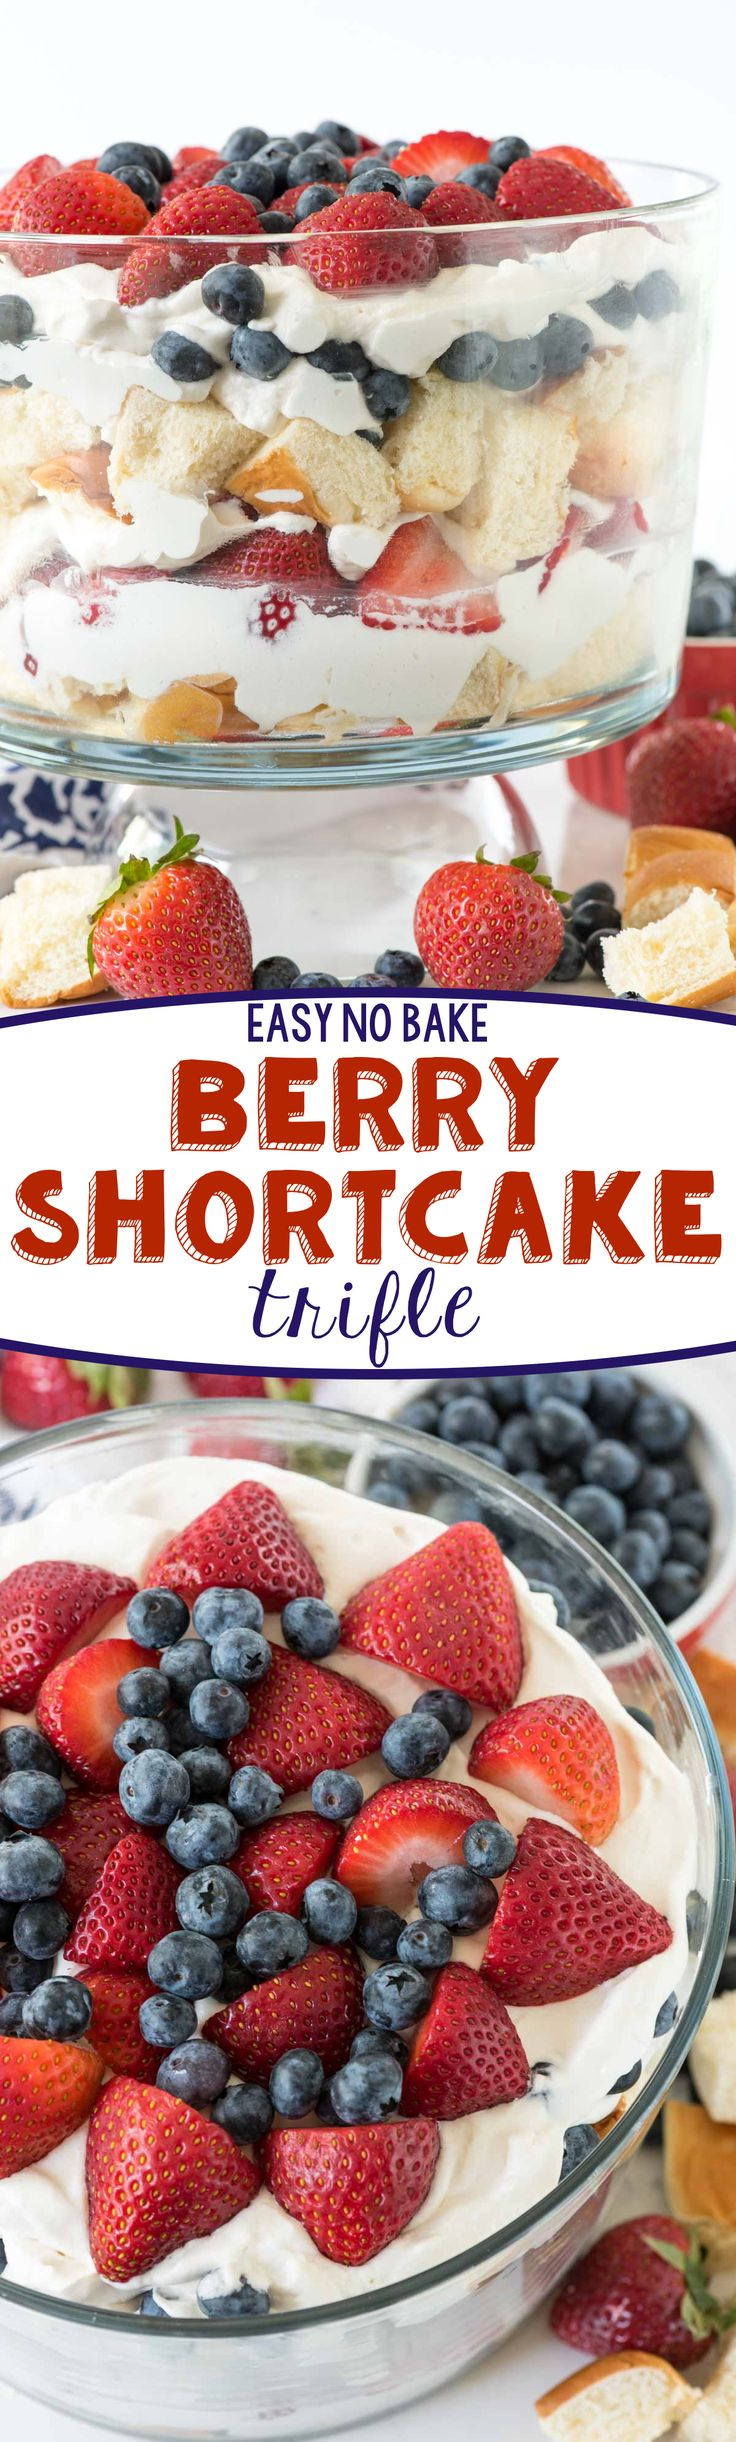 No Bake Berry Shortcake Trifle - this shortcake recipe is SO easy!! It's perfect for any summer party.